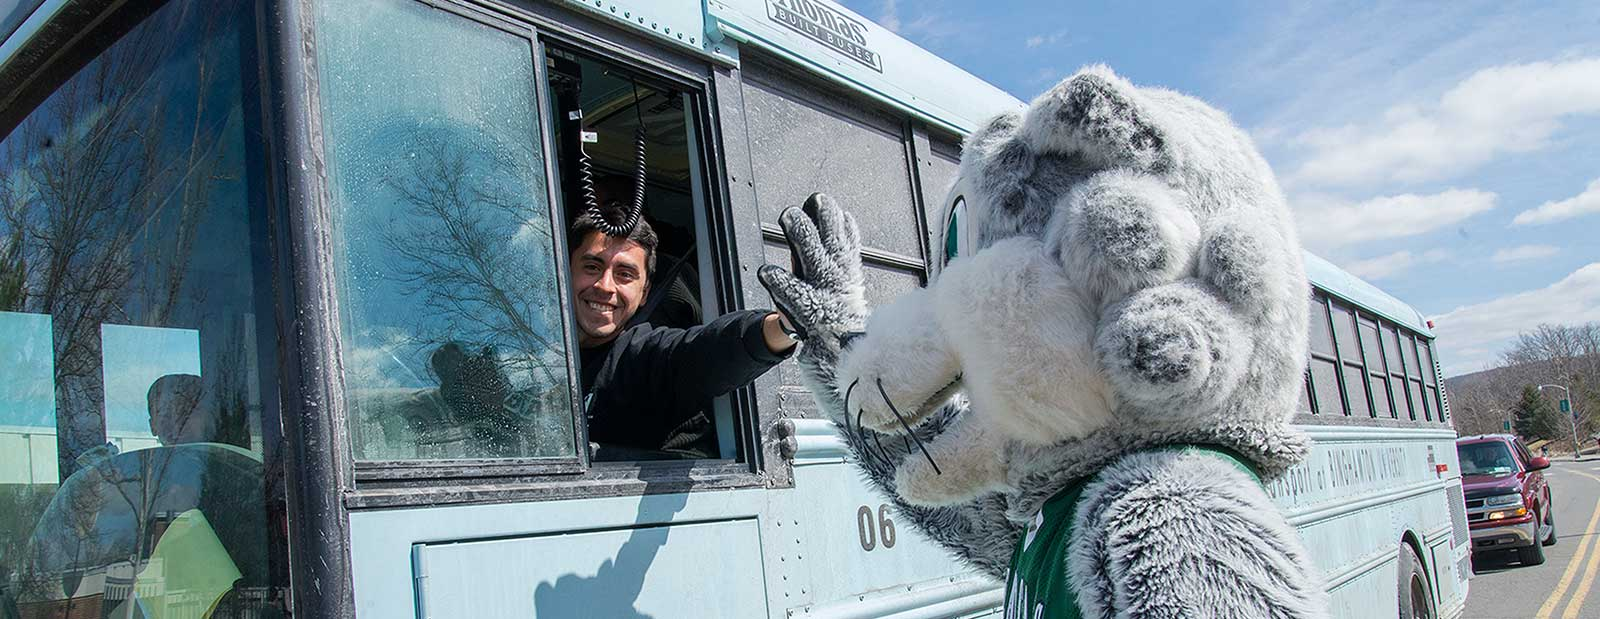 occt - transportation and parking services | binghamton university